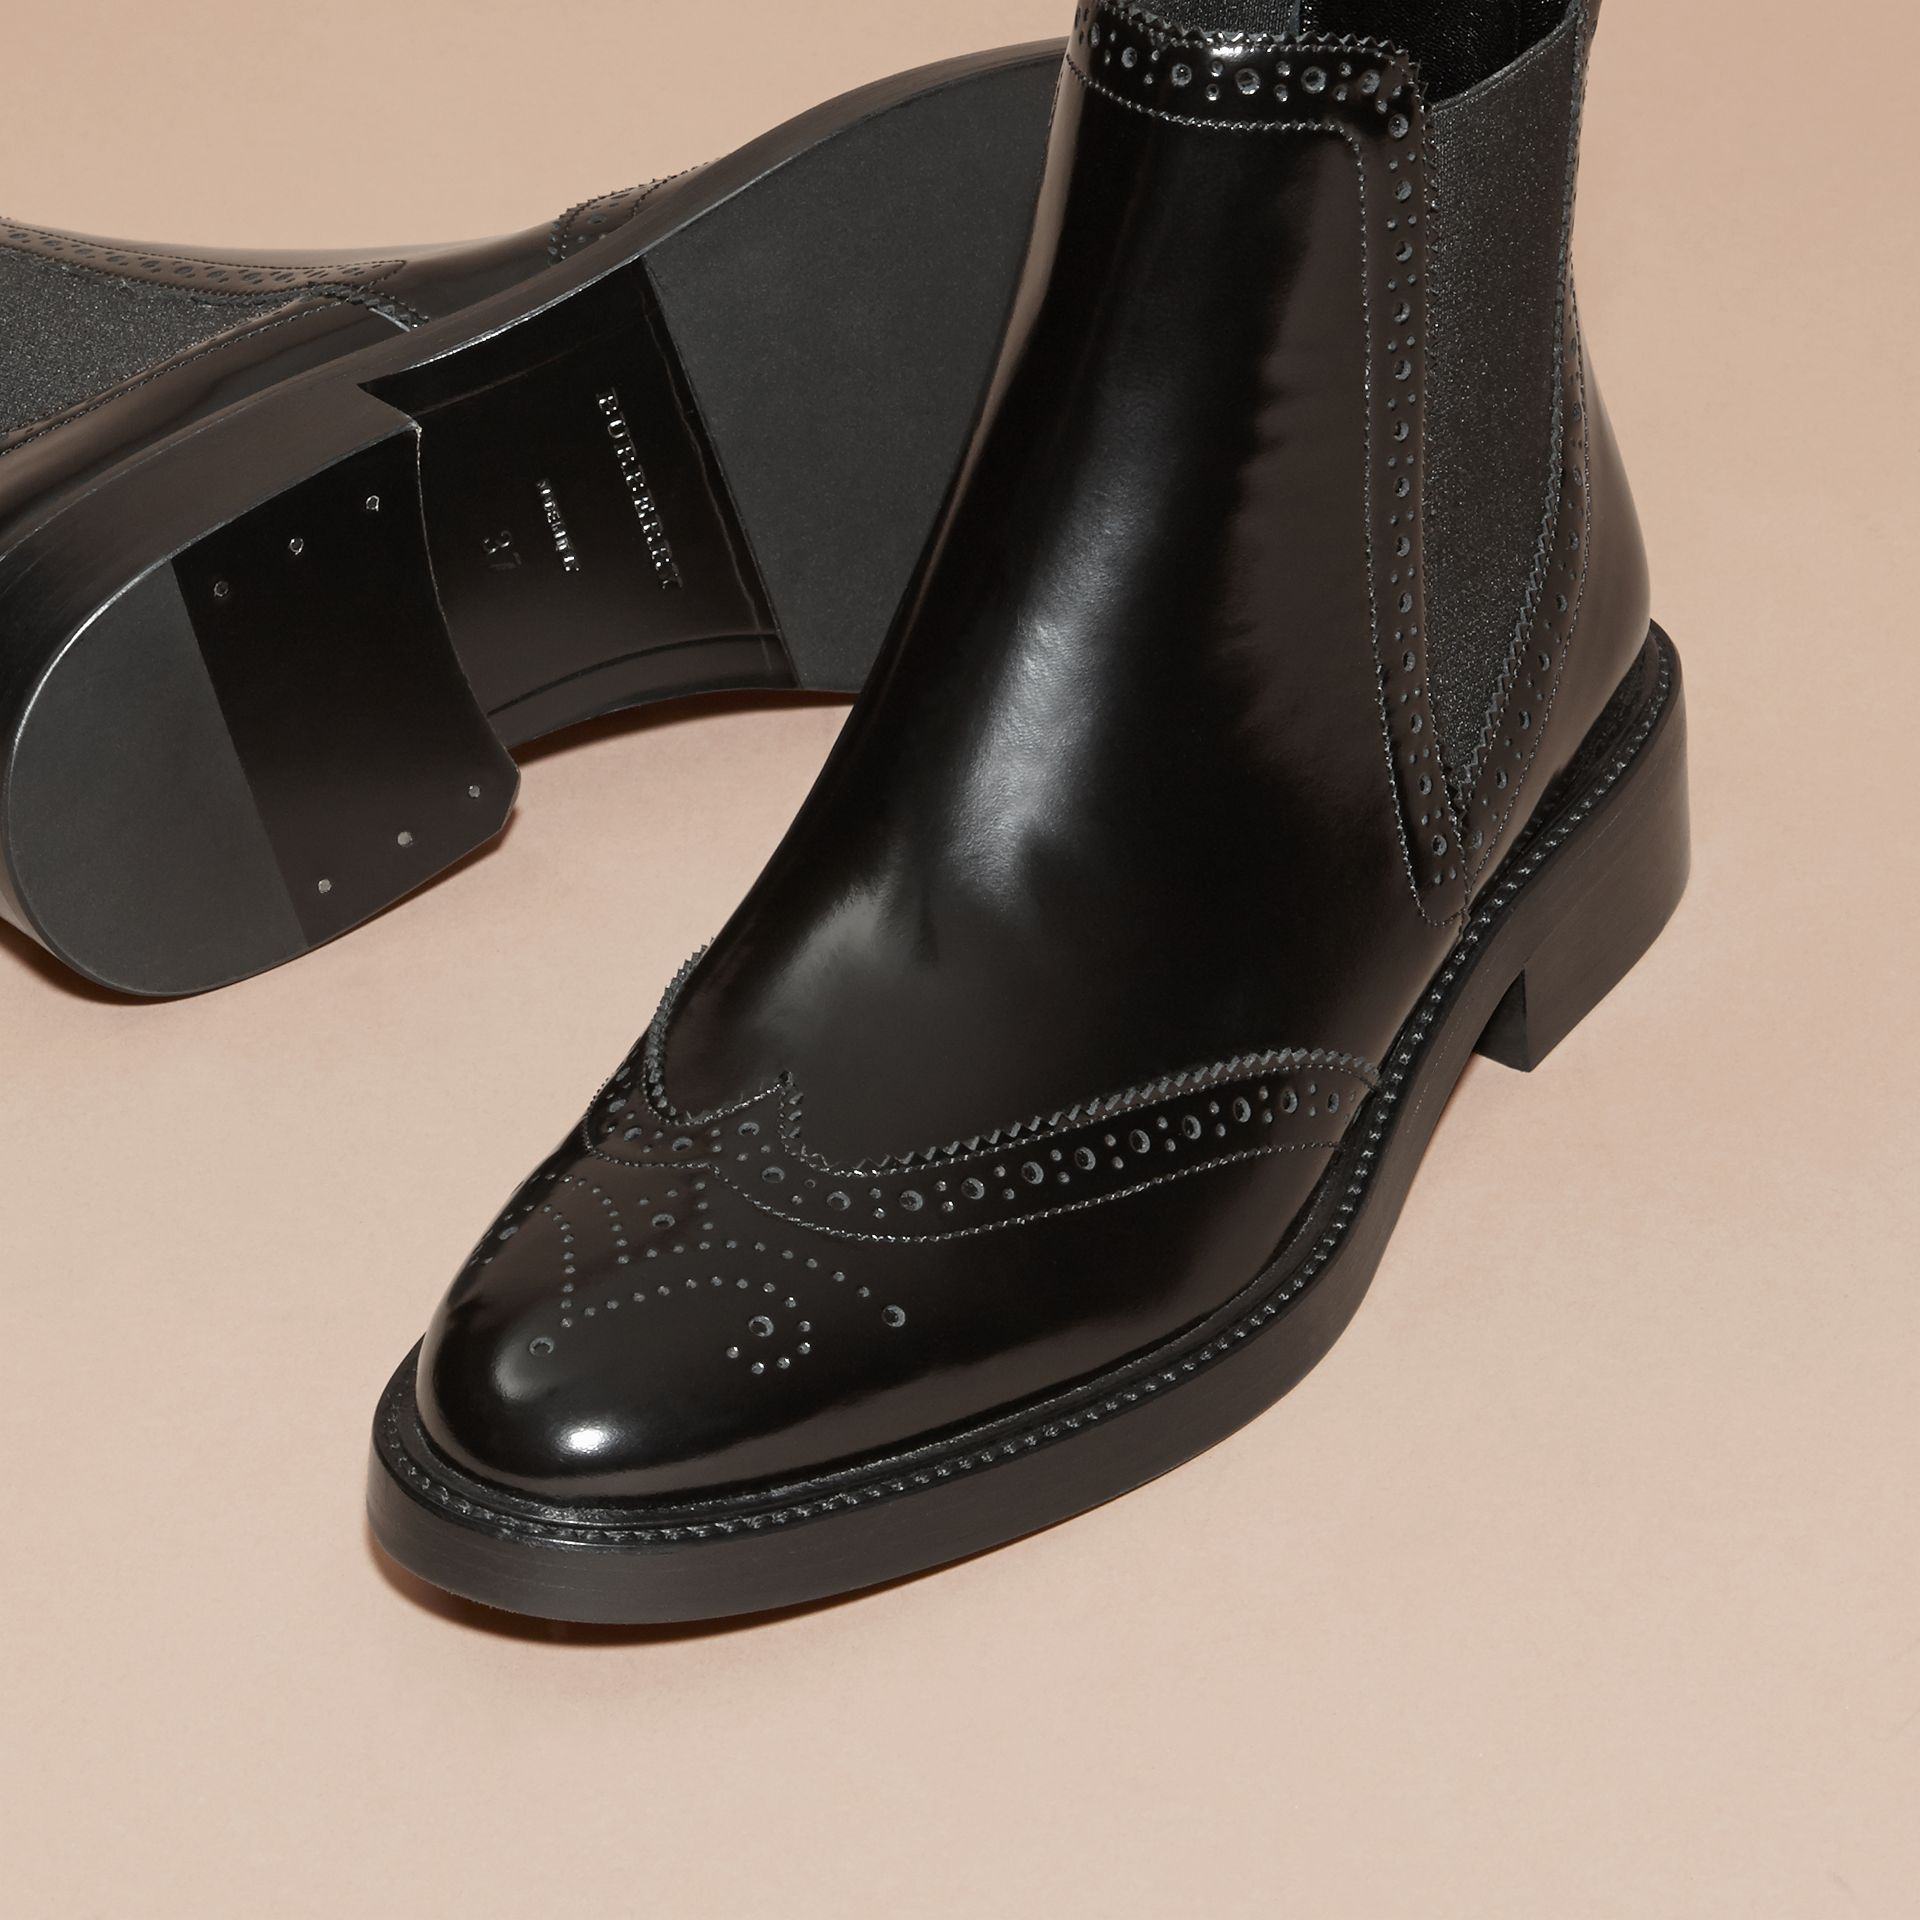 Leather Wingtip Chelsea Boots in Black - Women | Burberry - gallery image 6